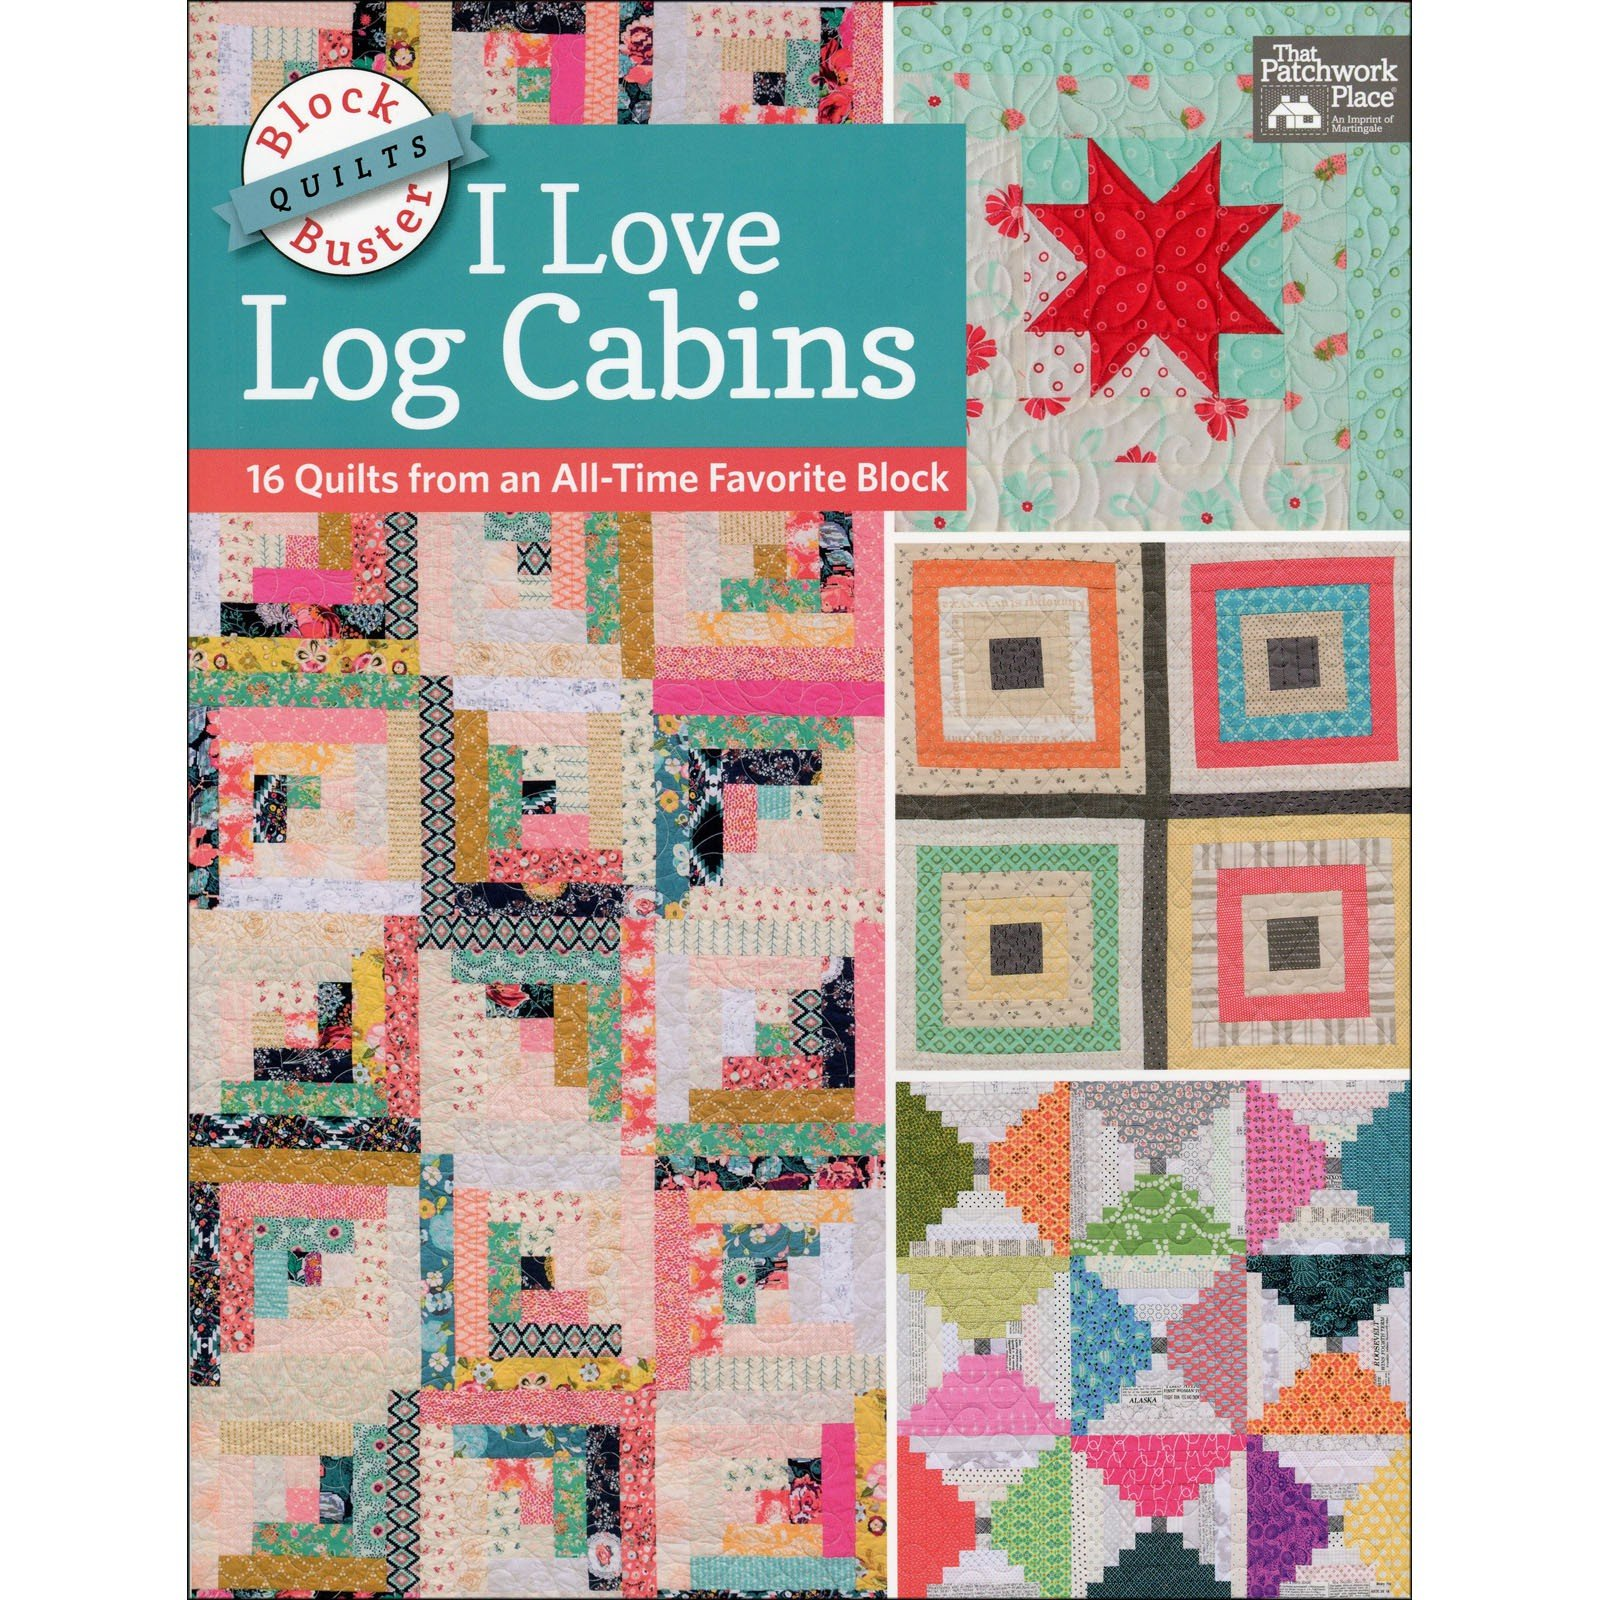 I Love Log Cabins<br/>That Patchwork Place